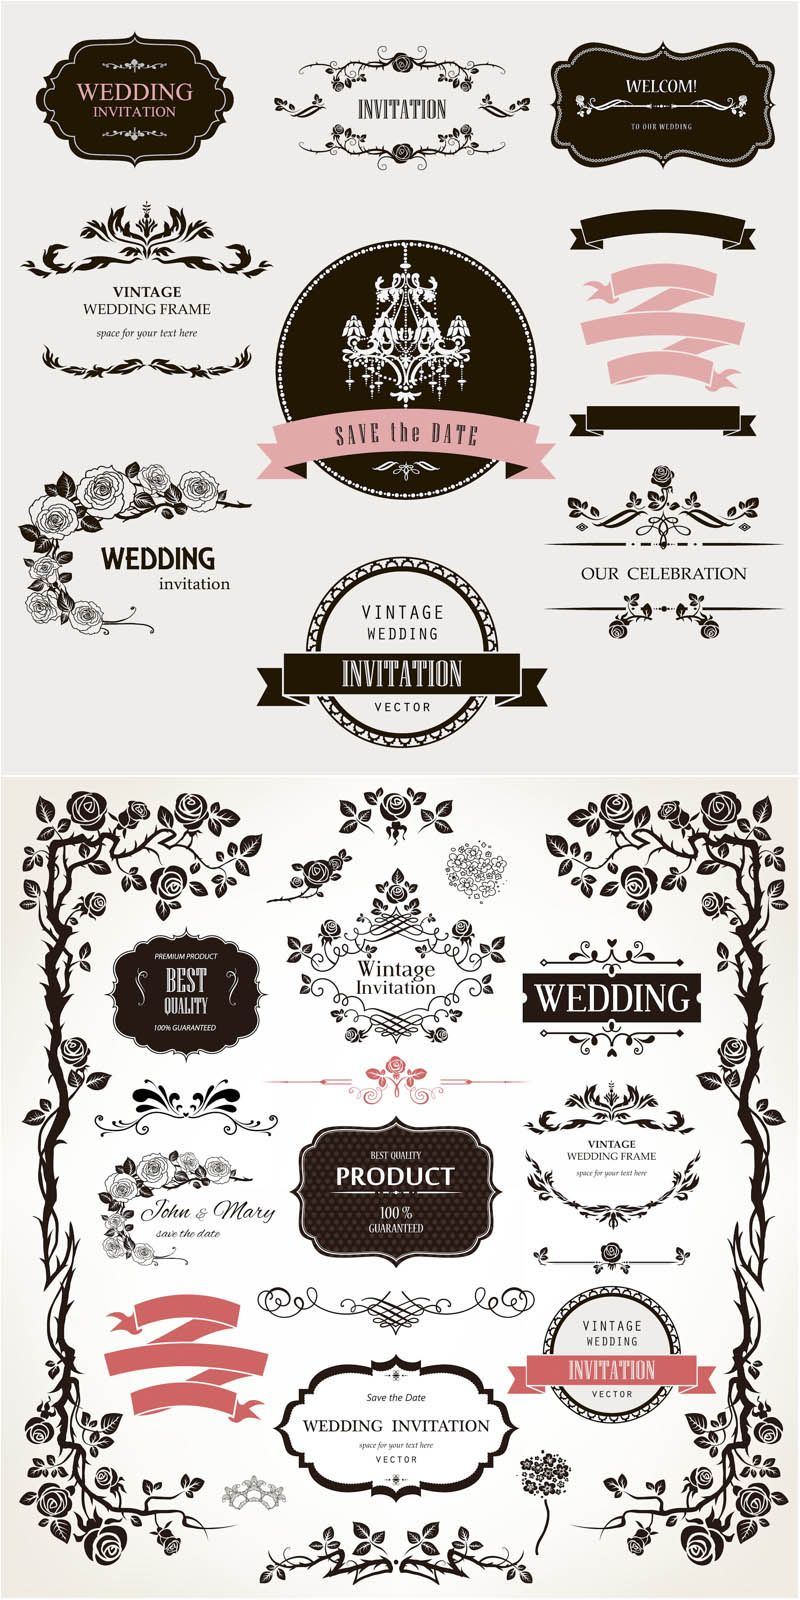 Decorative Floral Wedding Design Elements Vector Desain Grafis